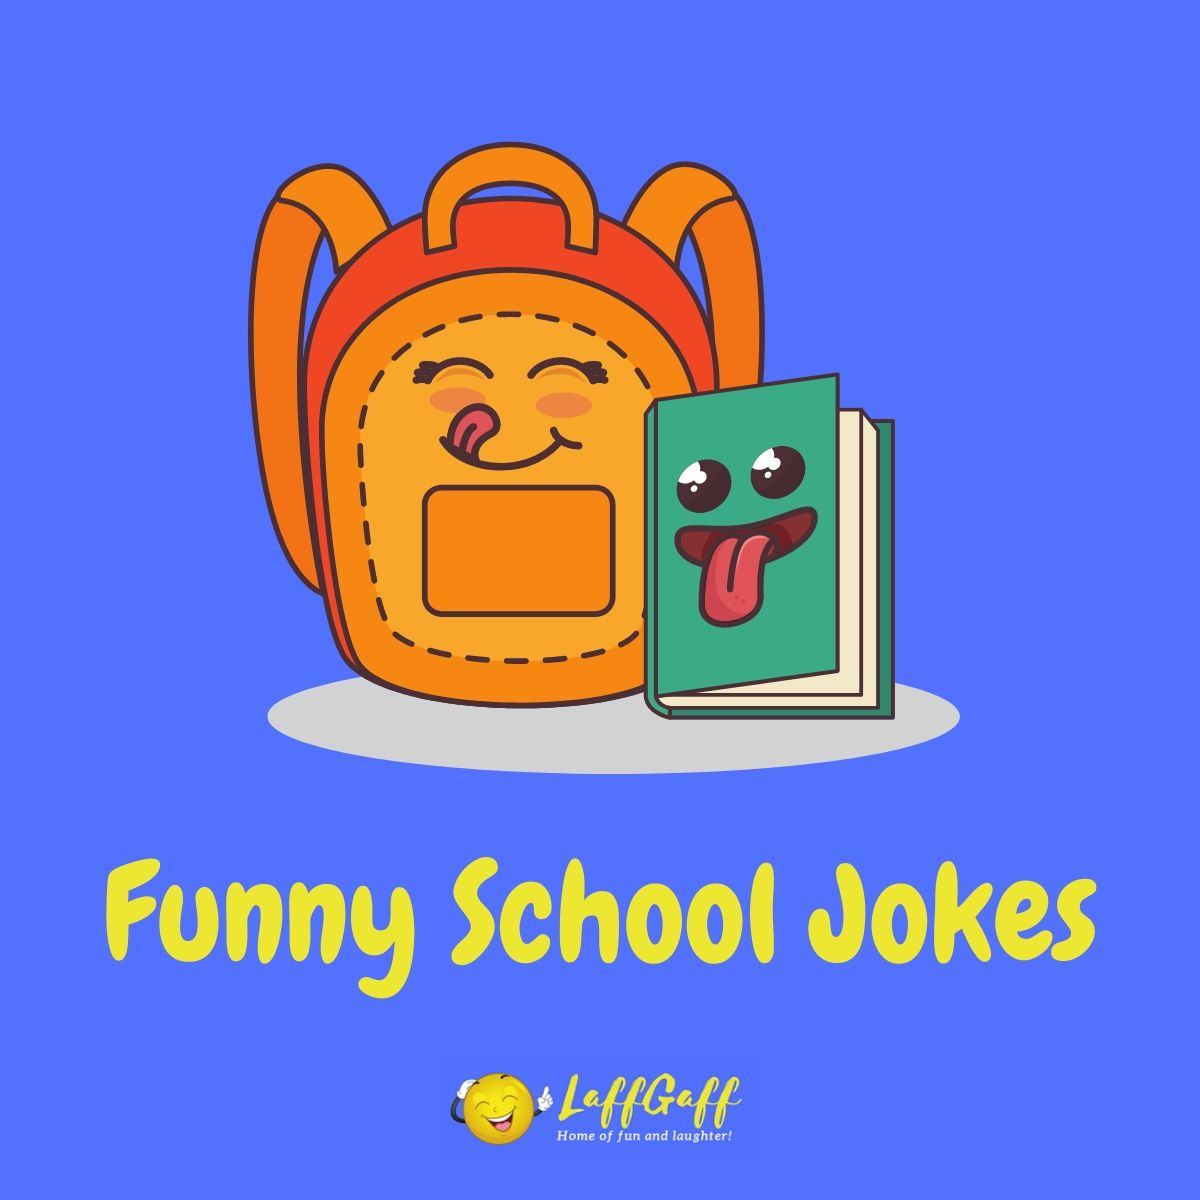 Featured image for a page of funny school jokes and puns.